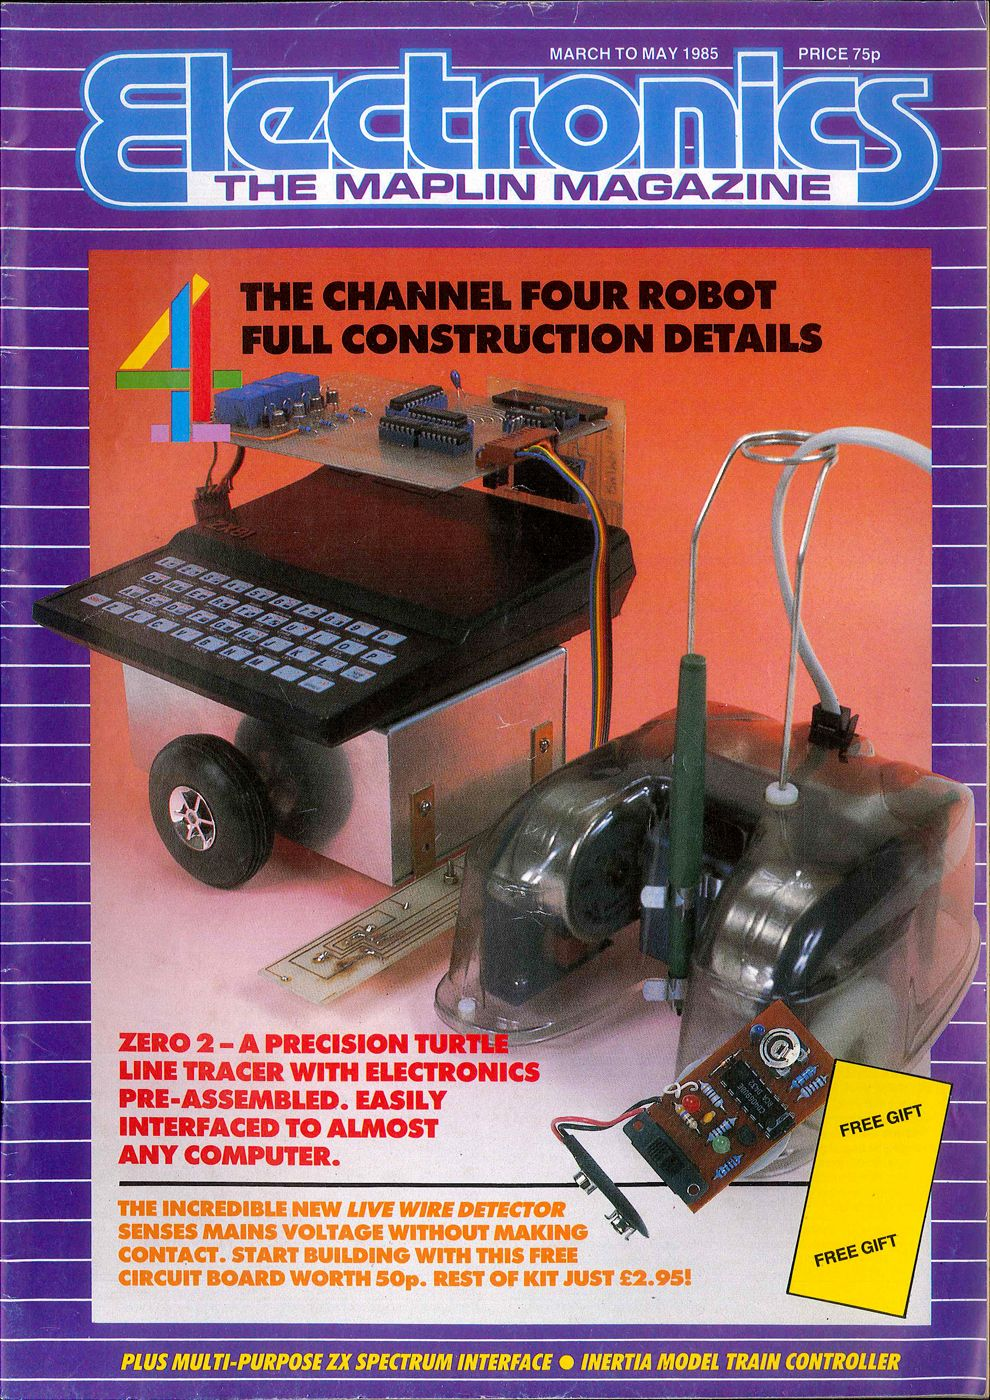 Electronics The Maplin Magazine Mar 1985 C4 Channel 4 Four Robot Live Circuit Tracer Zx81 Zero 2